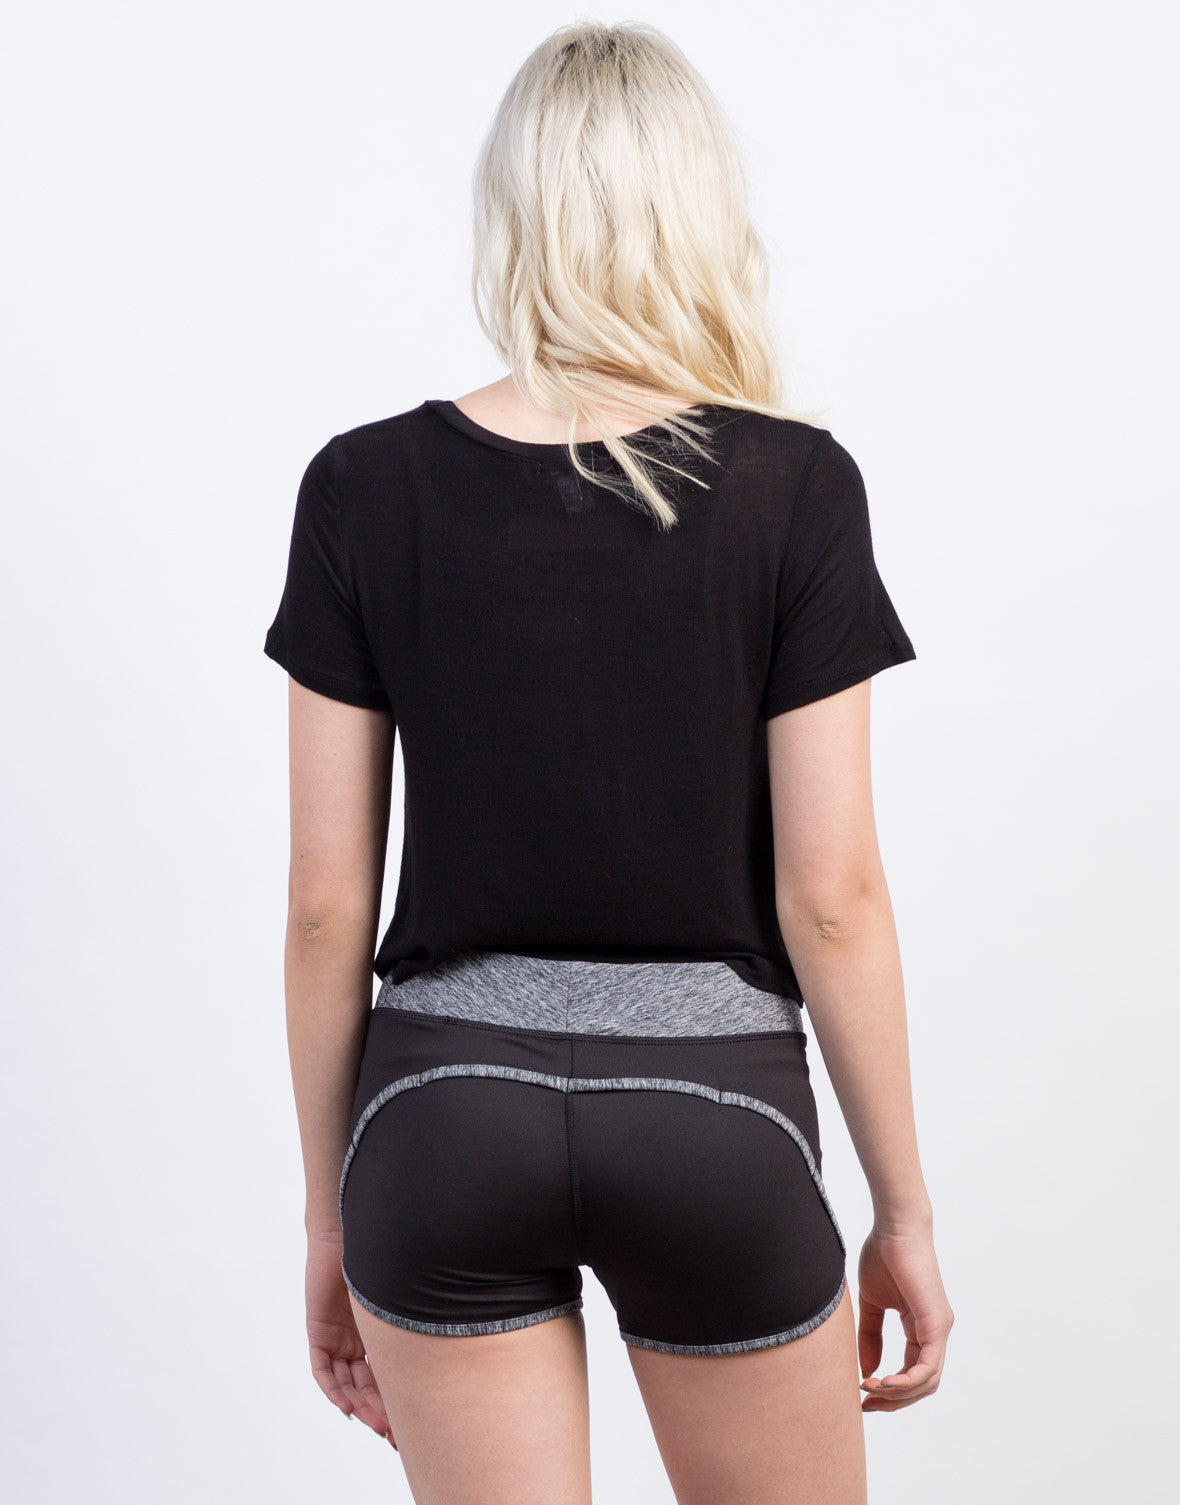 Back View of Two-Tone Workout Shorts